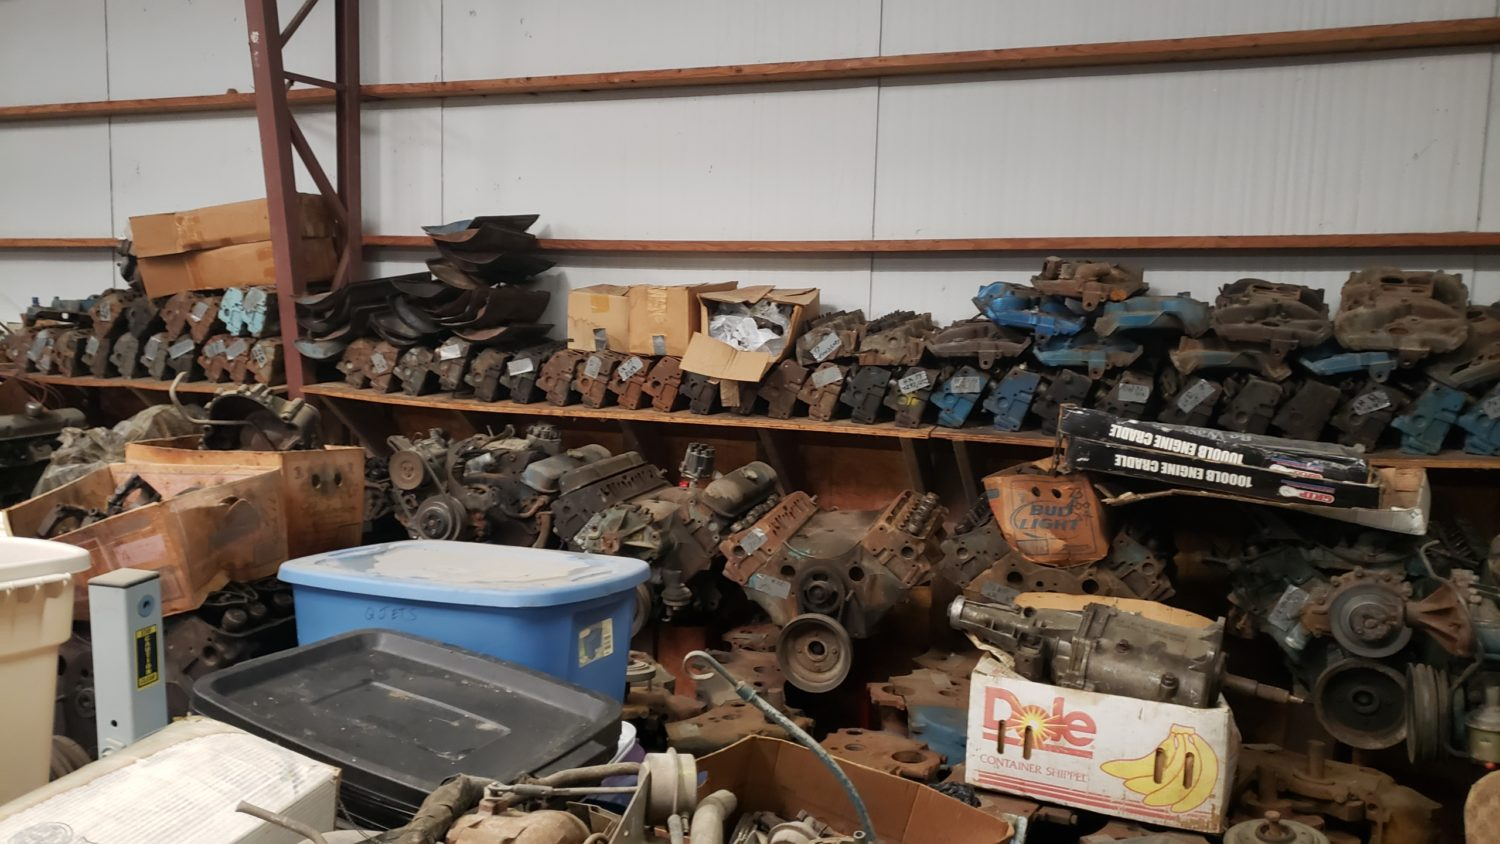 Amazing Trans Am & Pontiac Cars and Parts Hoard! The Kansas Collection - image 14